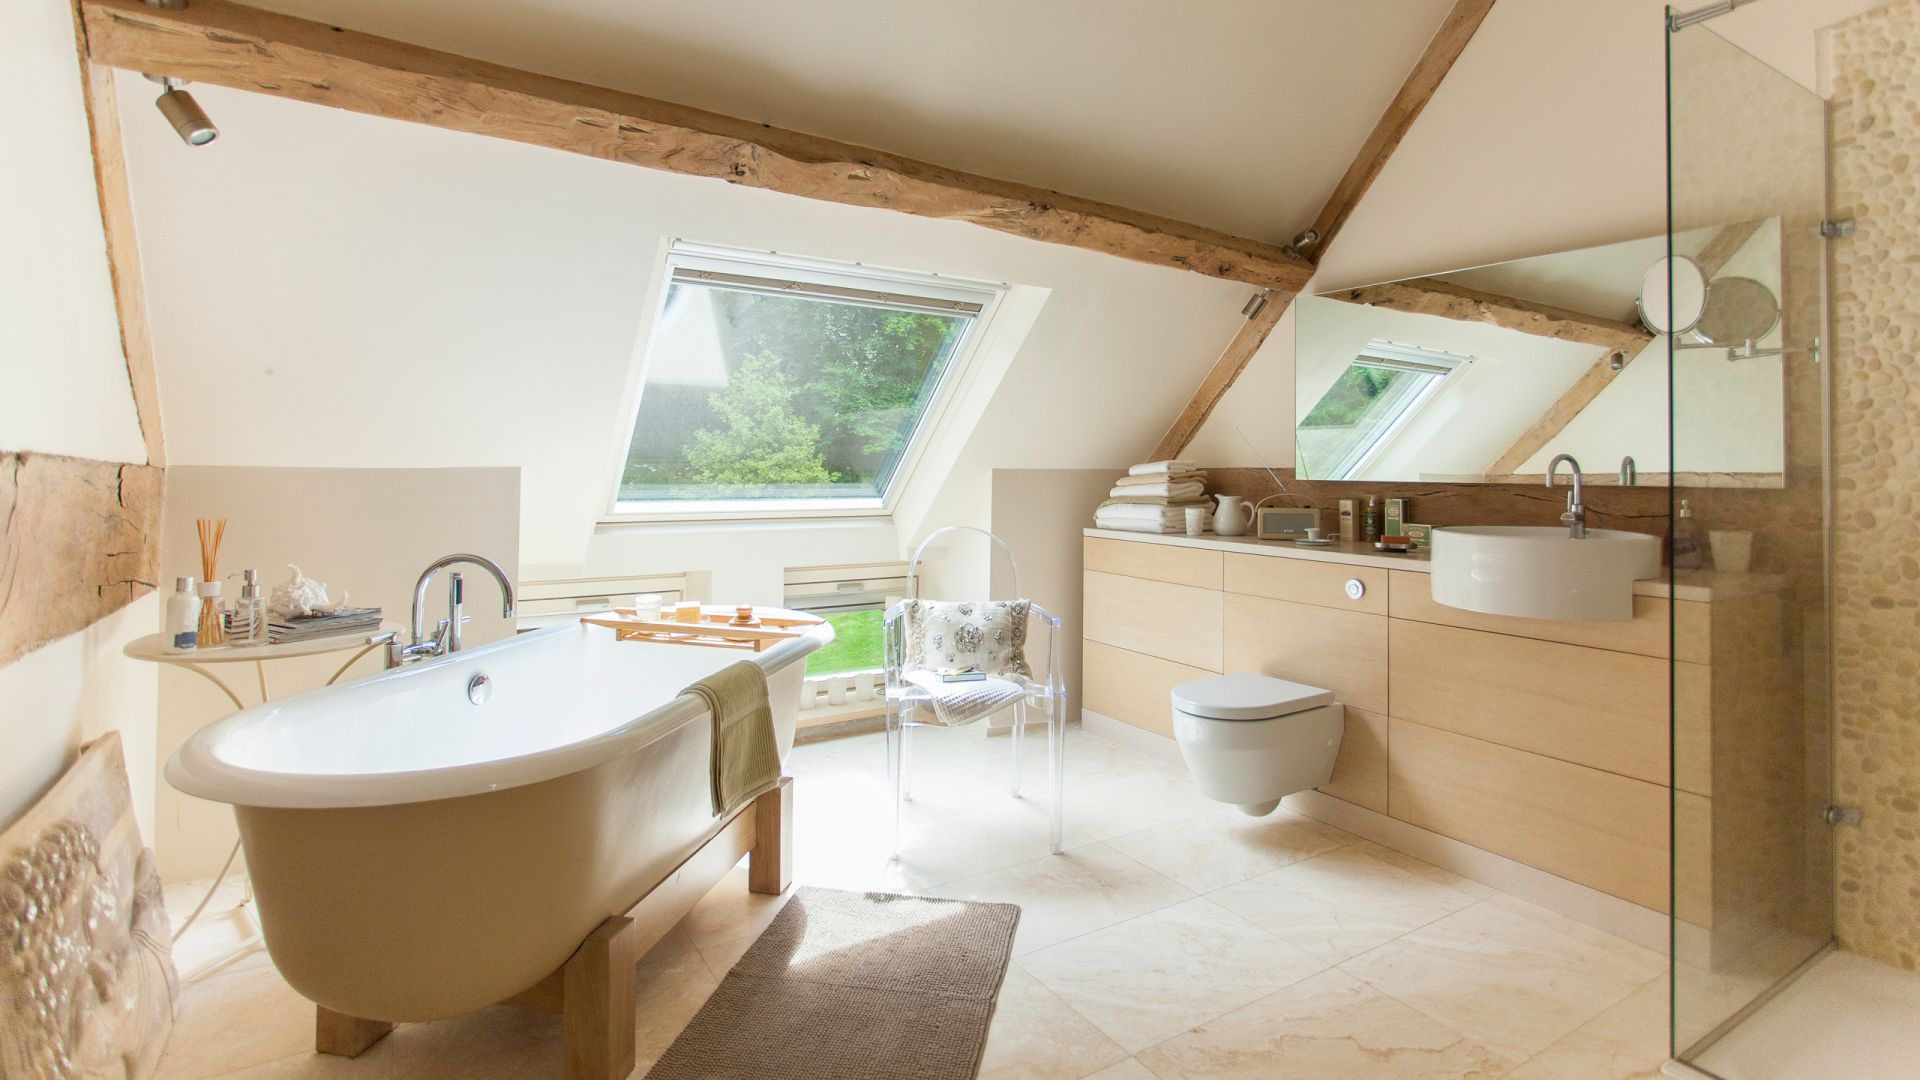 Barn-conversion Bathroom in Pretty Sand Tones